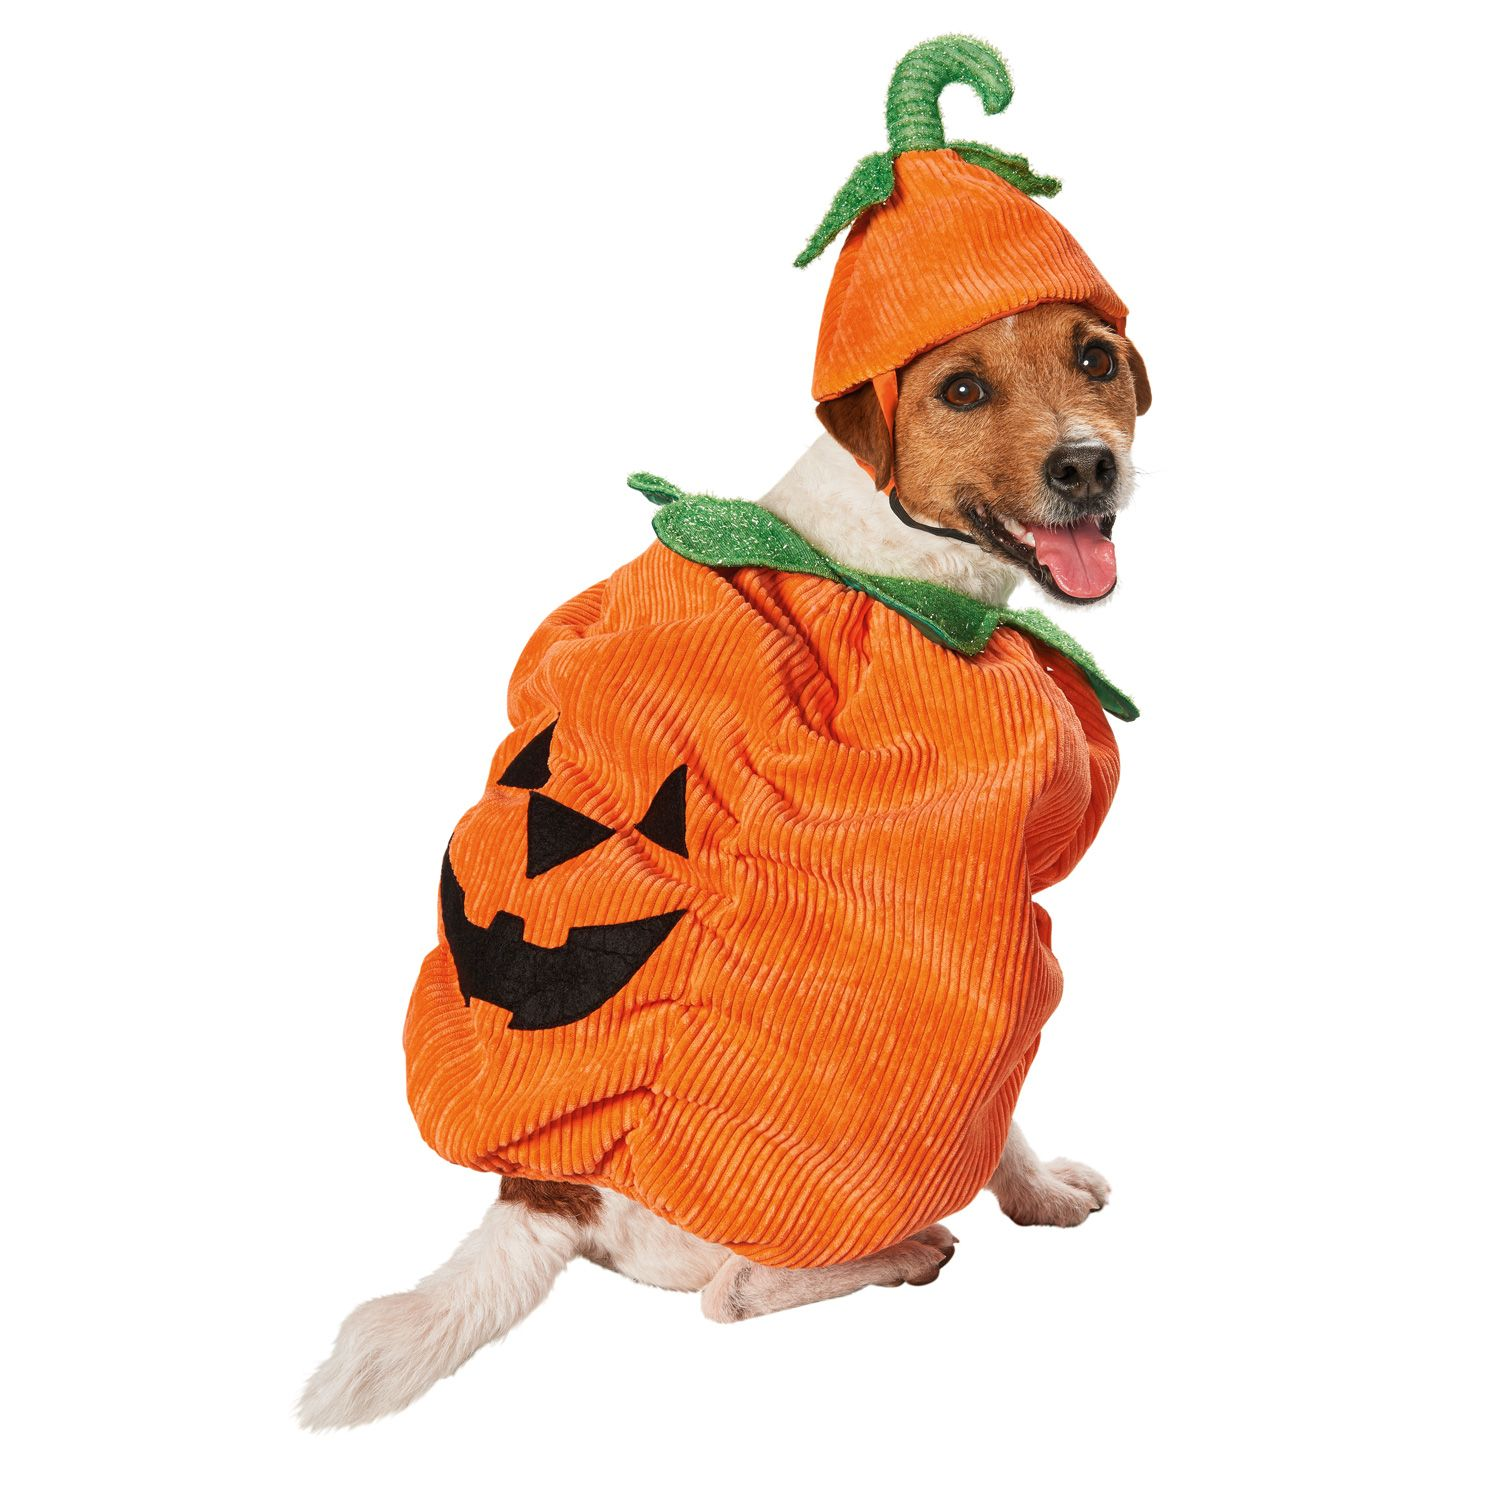 Petco Halloween Pumpkin Dog Costume Pet costumes, Pet